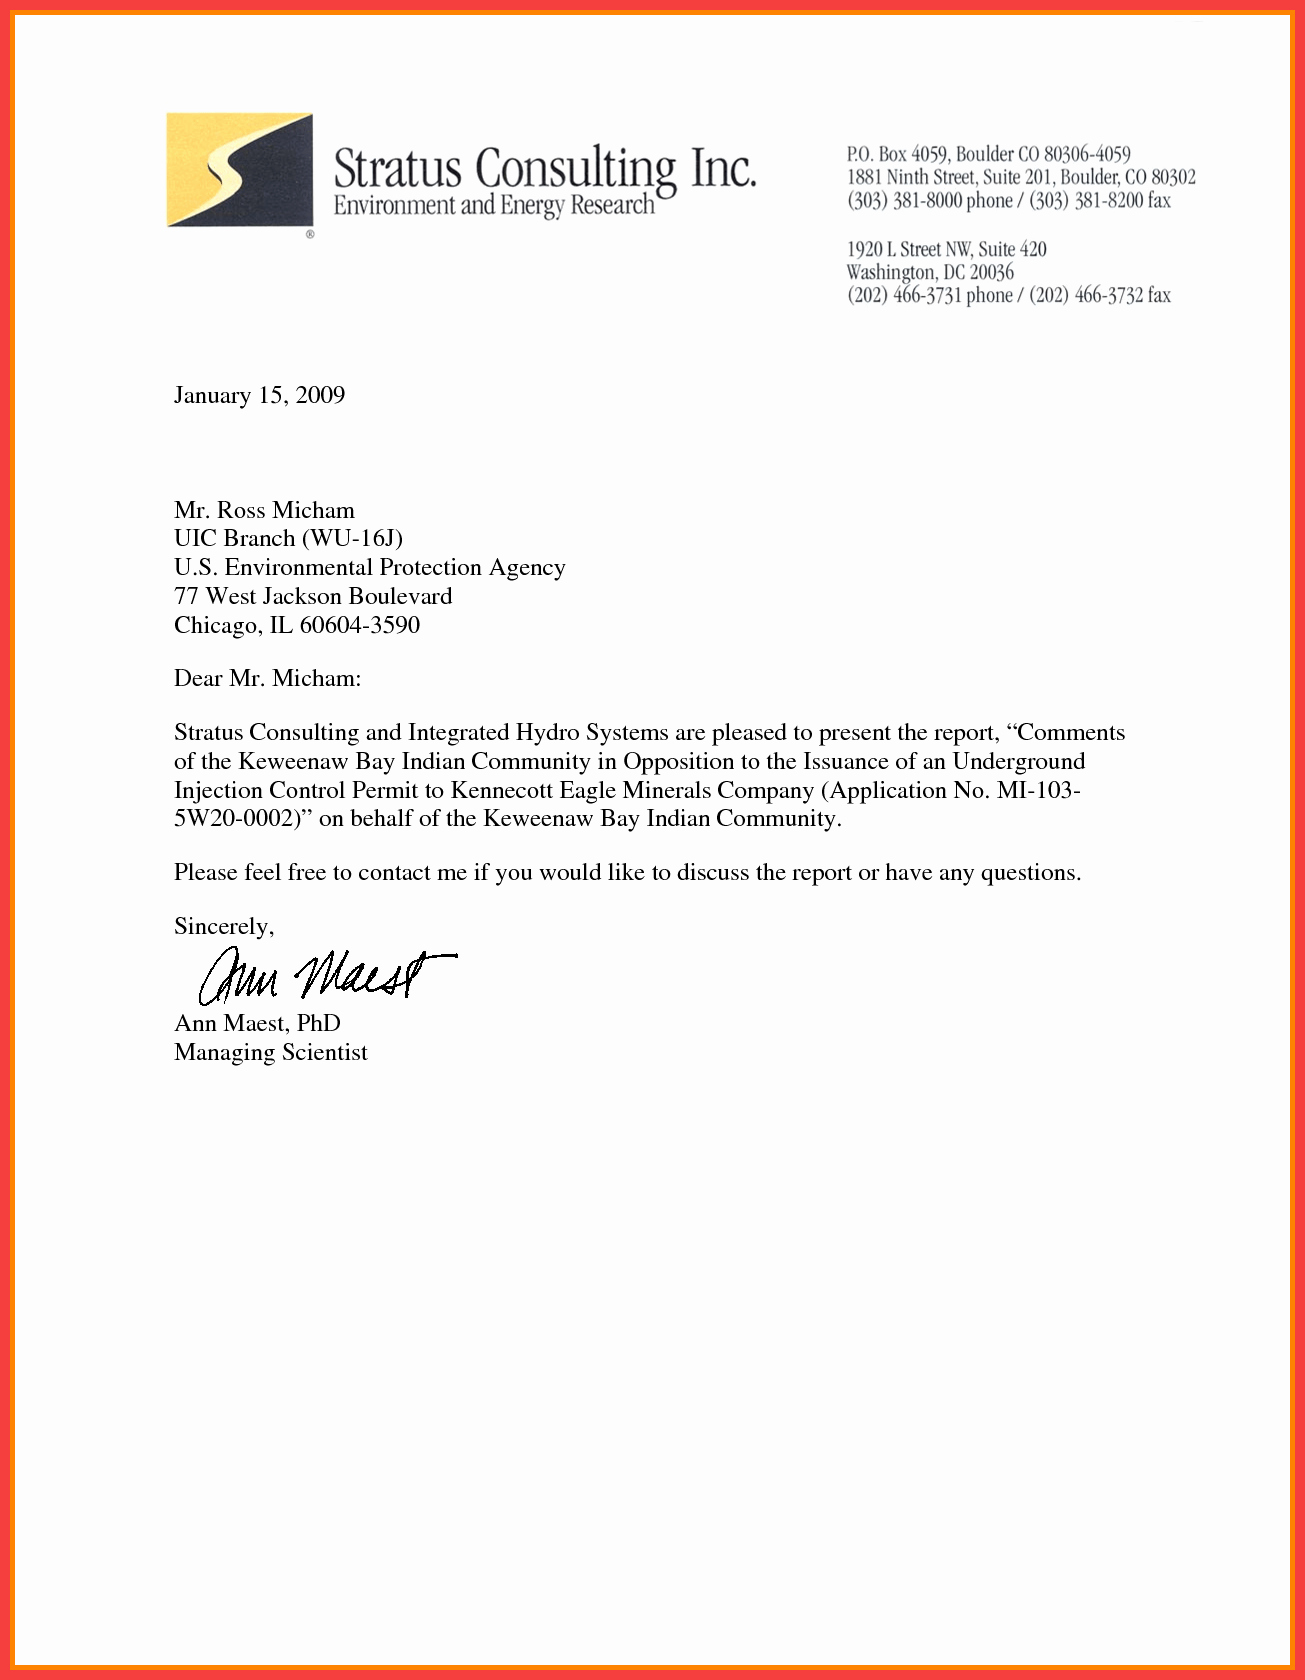 Free Download Business Letter Template Unique Professional Letter Outline